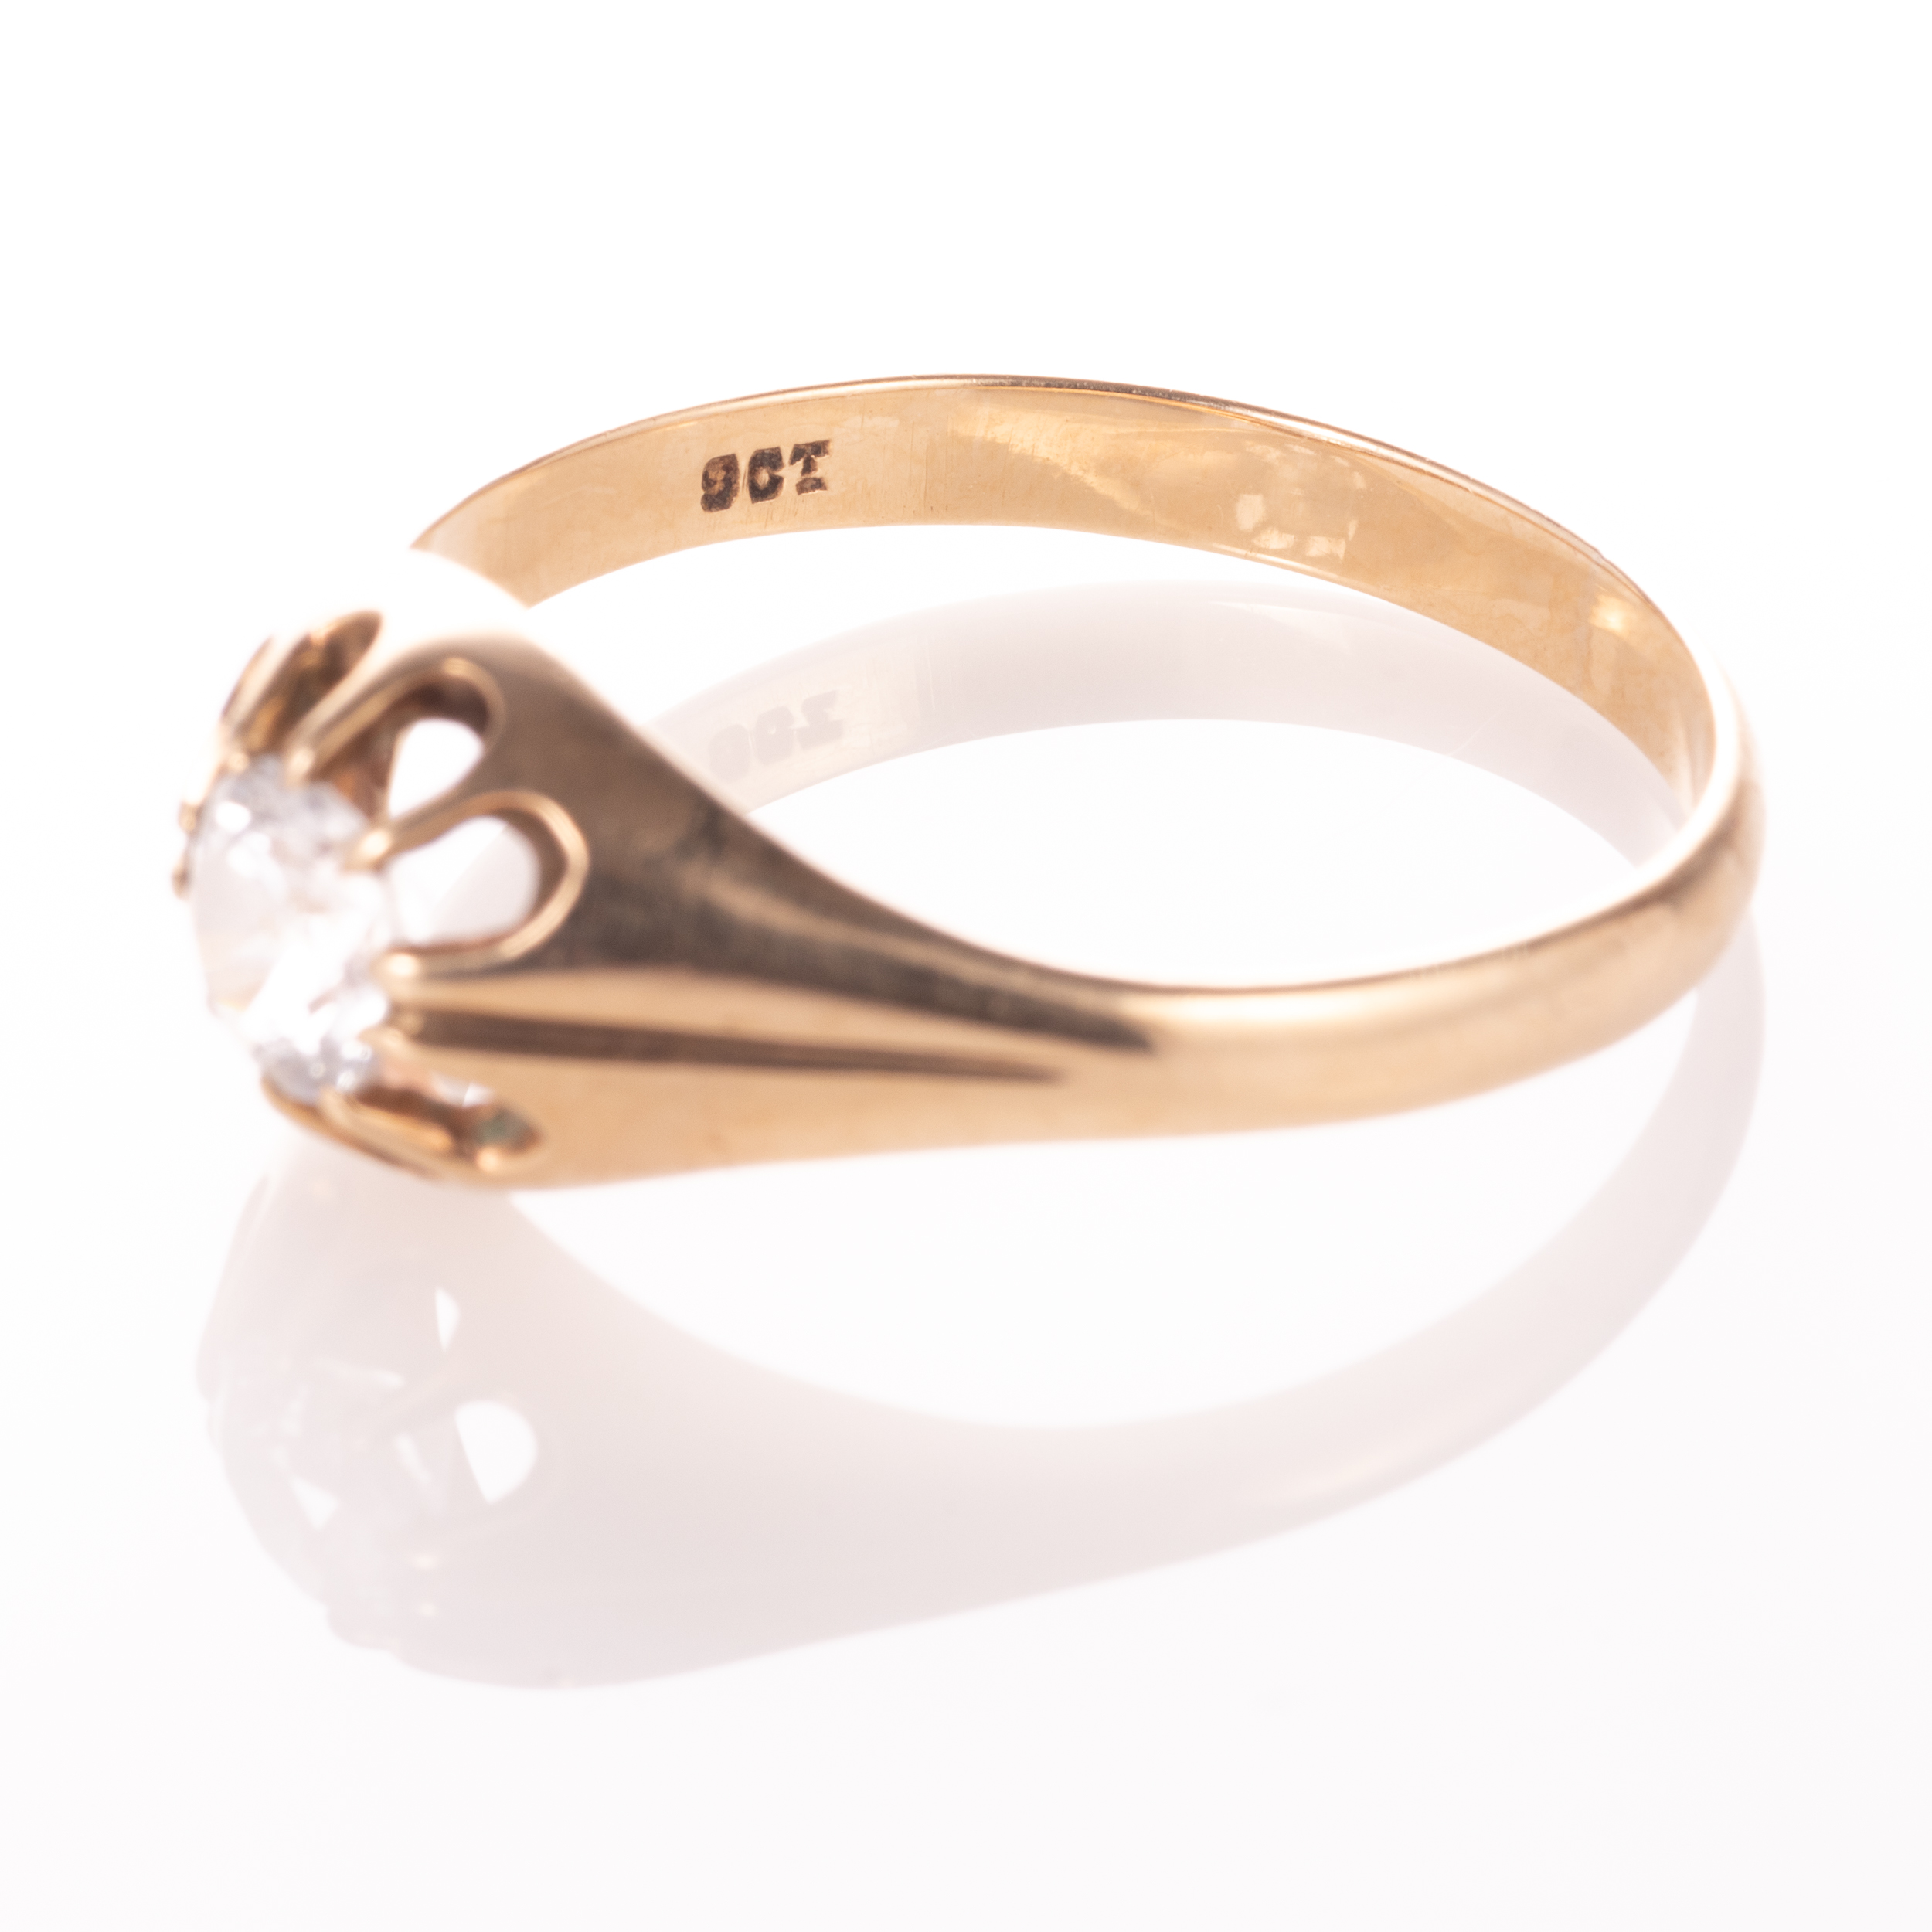 9ct Gold Gypsy Paste Solitaire Ring - Image 5 of 7